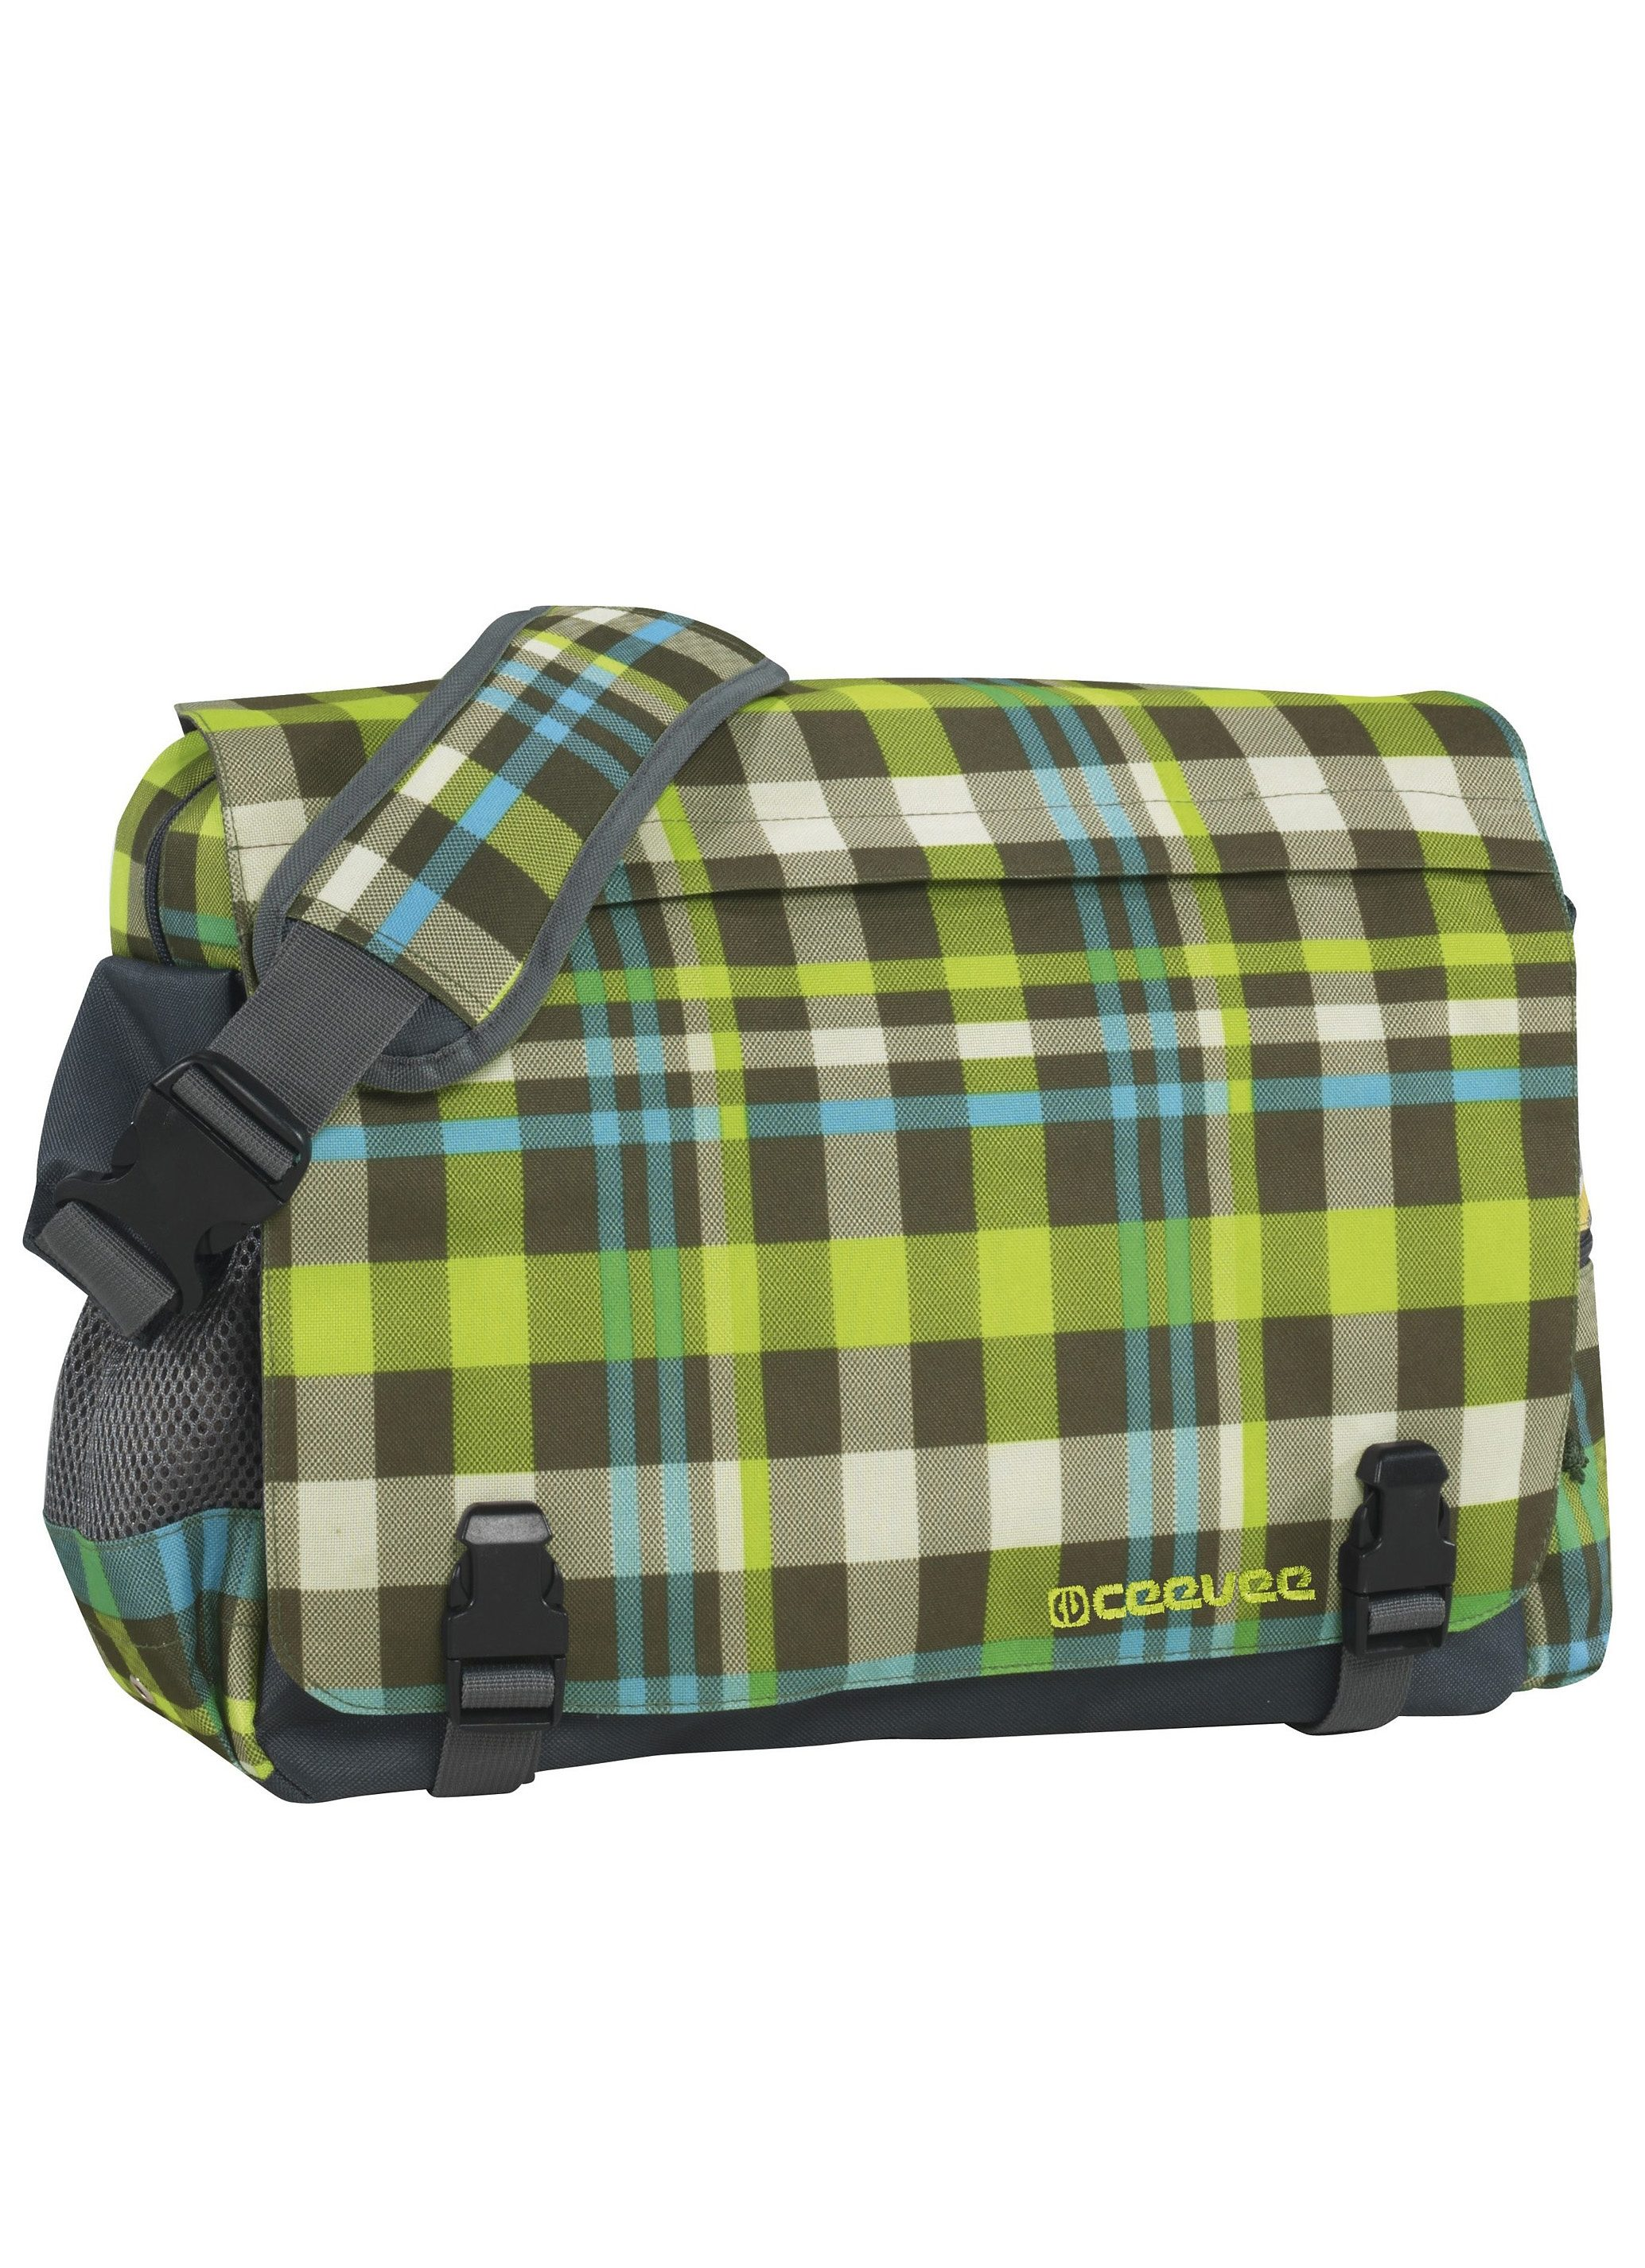 ceevee® Messenger Bag, »Manchester caro green«